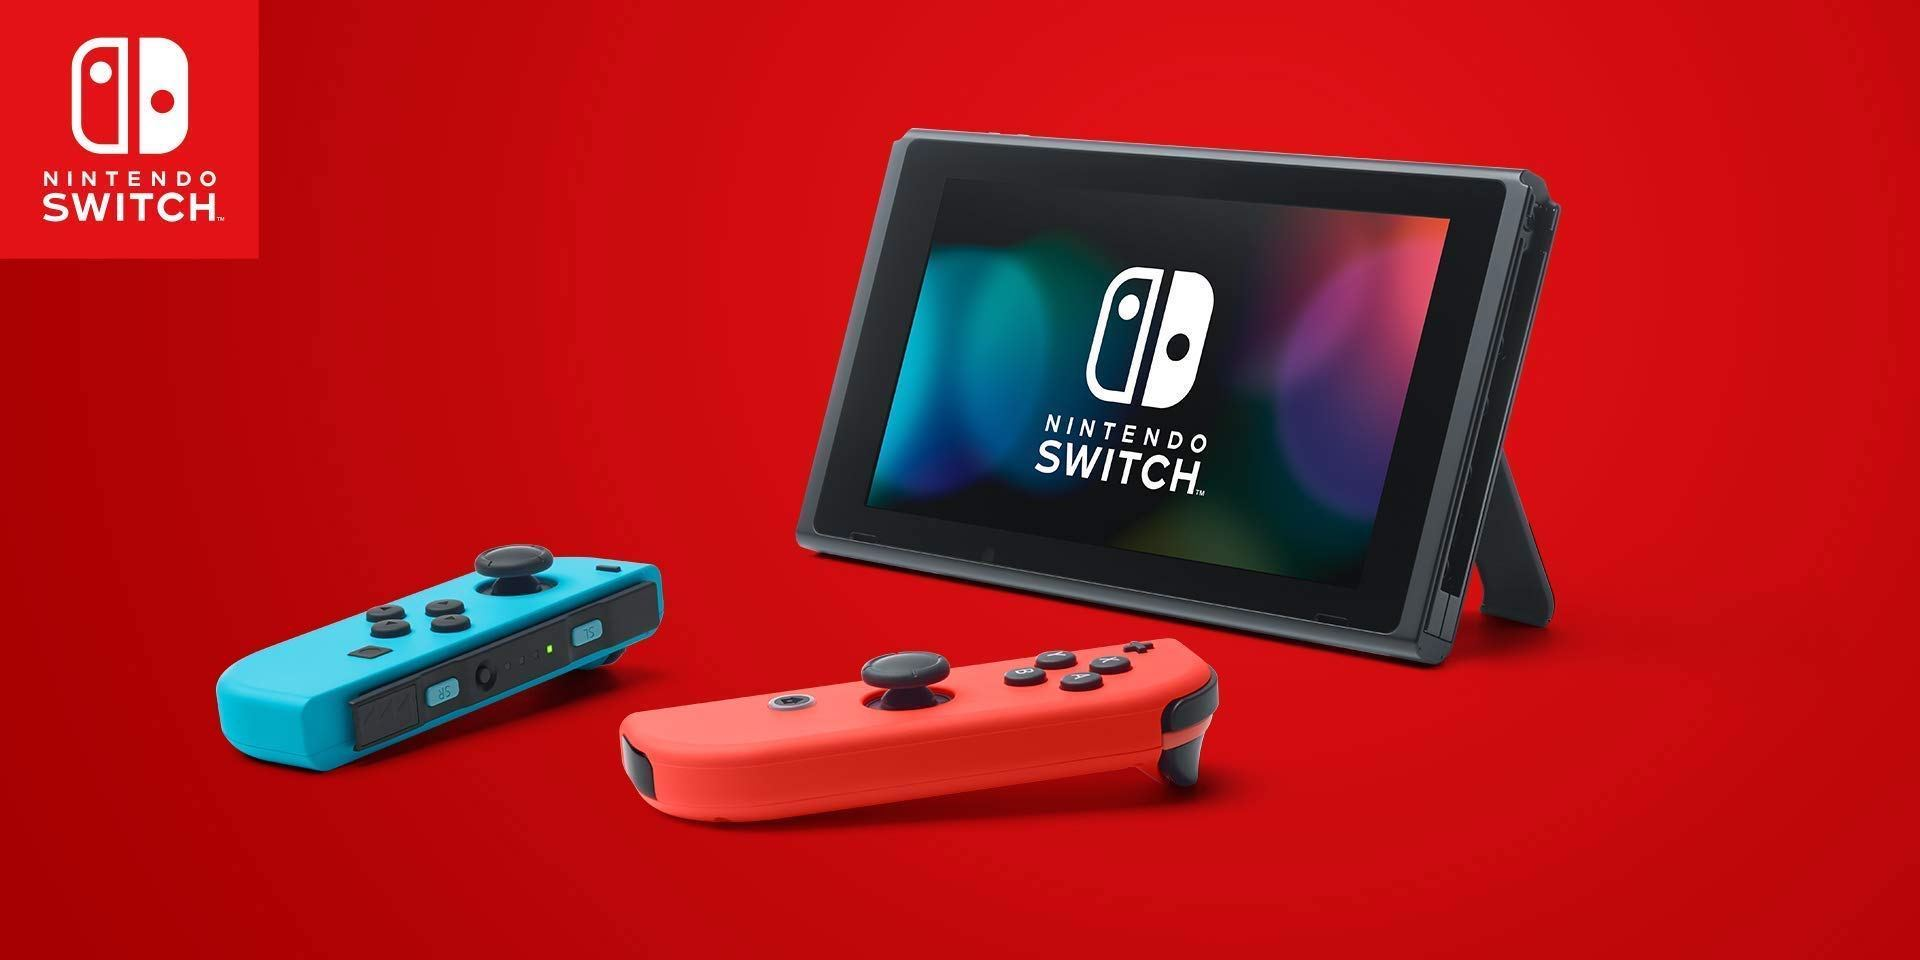 Nintendo Switch at one of the lowest prices we've tracked: $250 (Refurb, Orig. $300), more